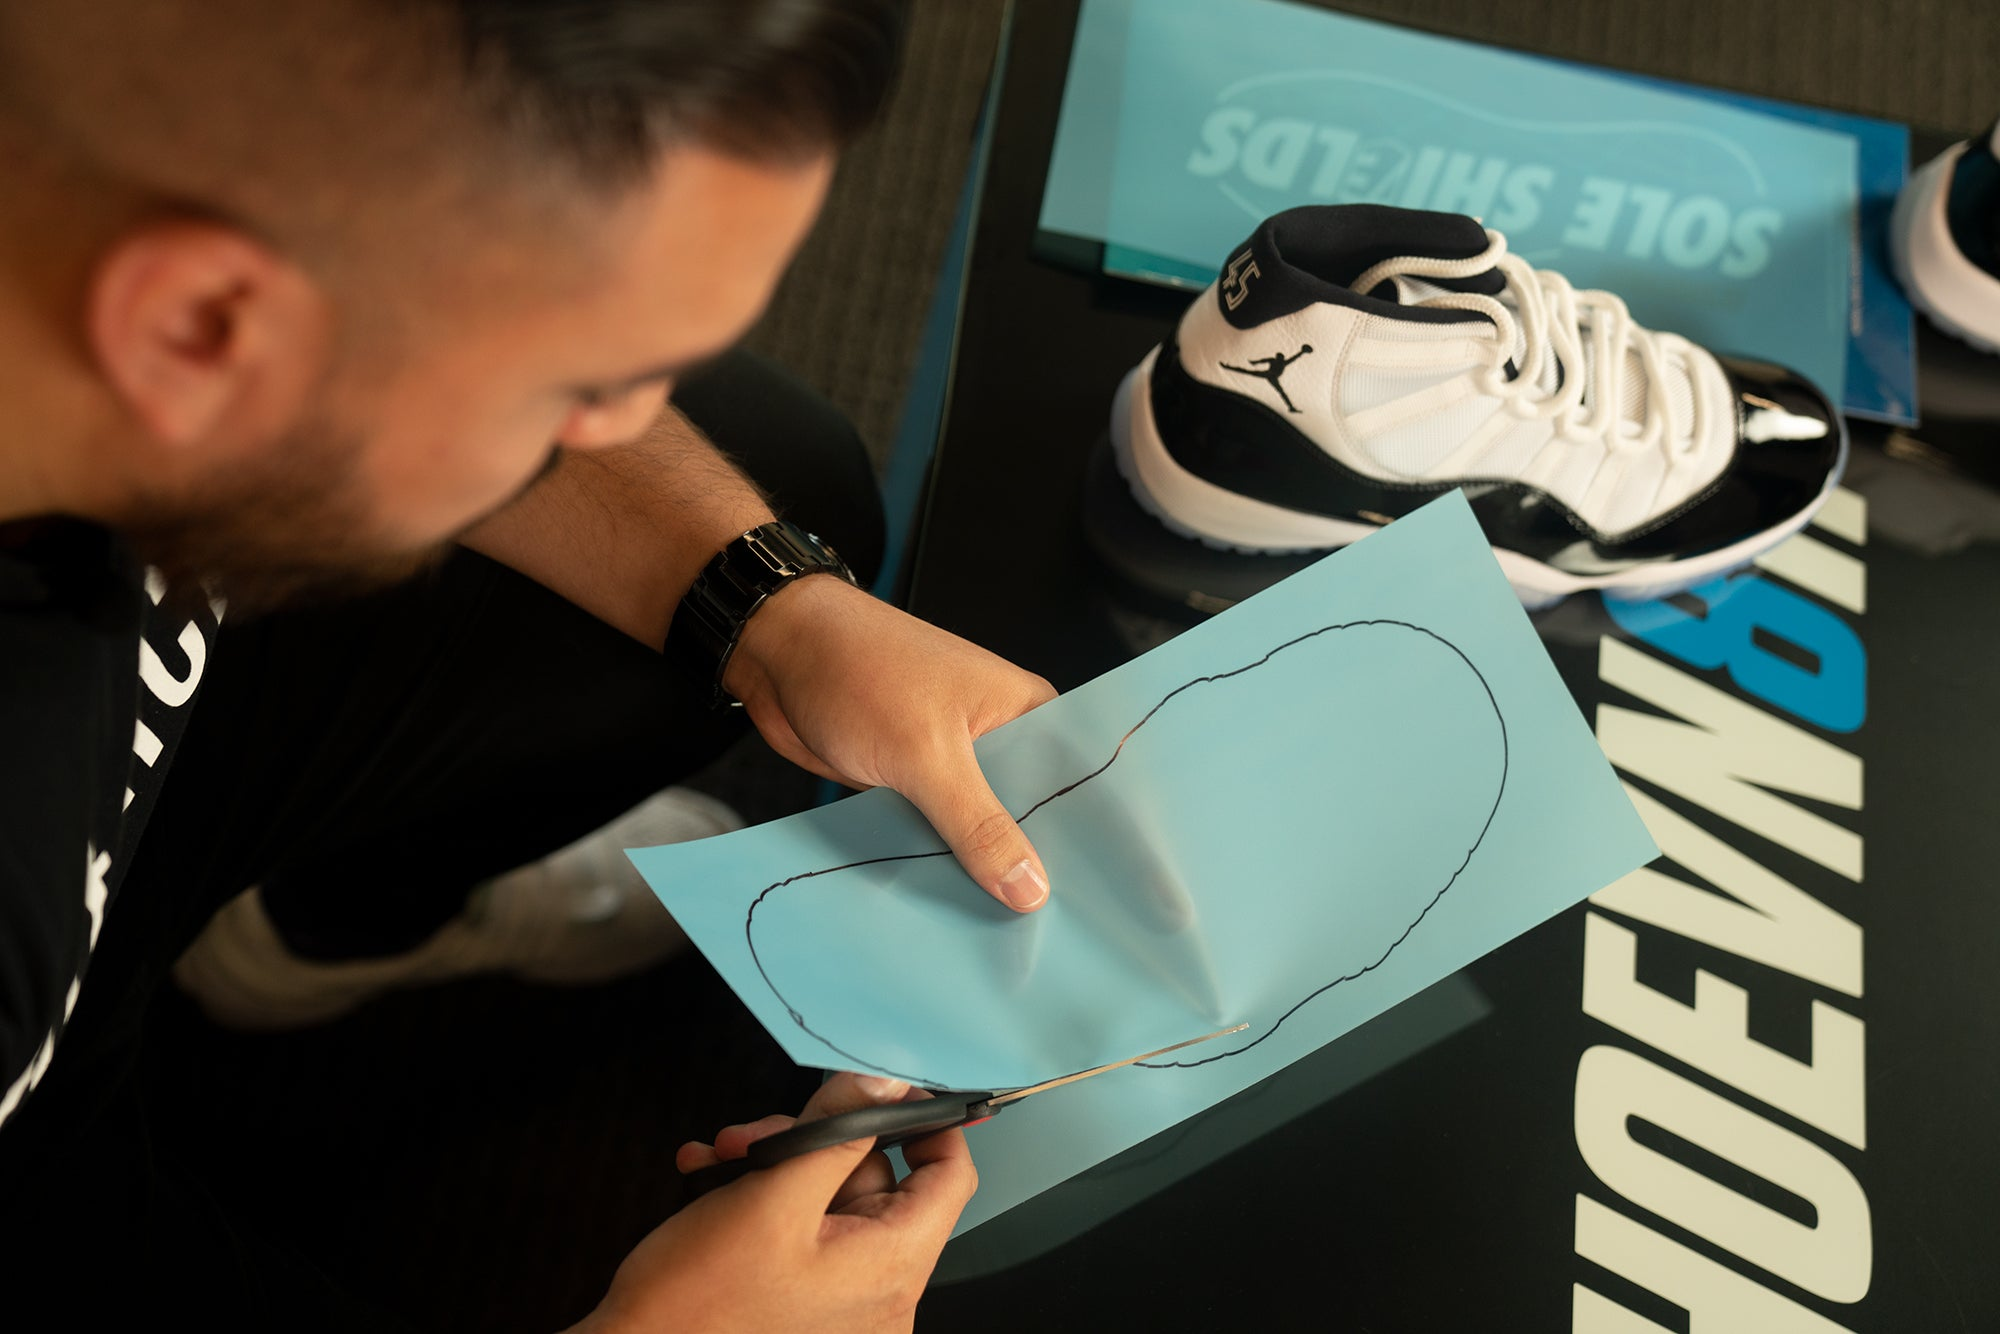 How to apply Sole Shields on Concord 11s